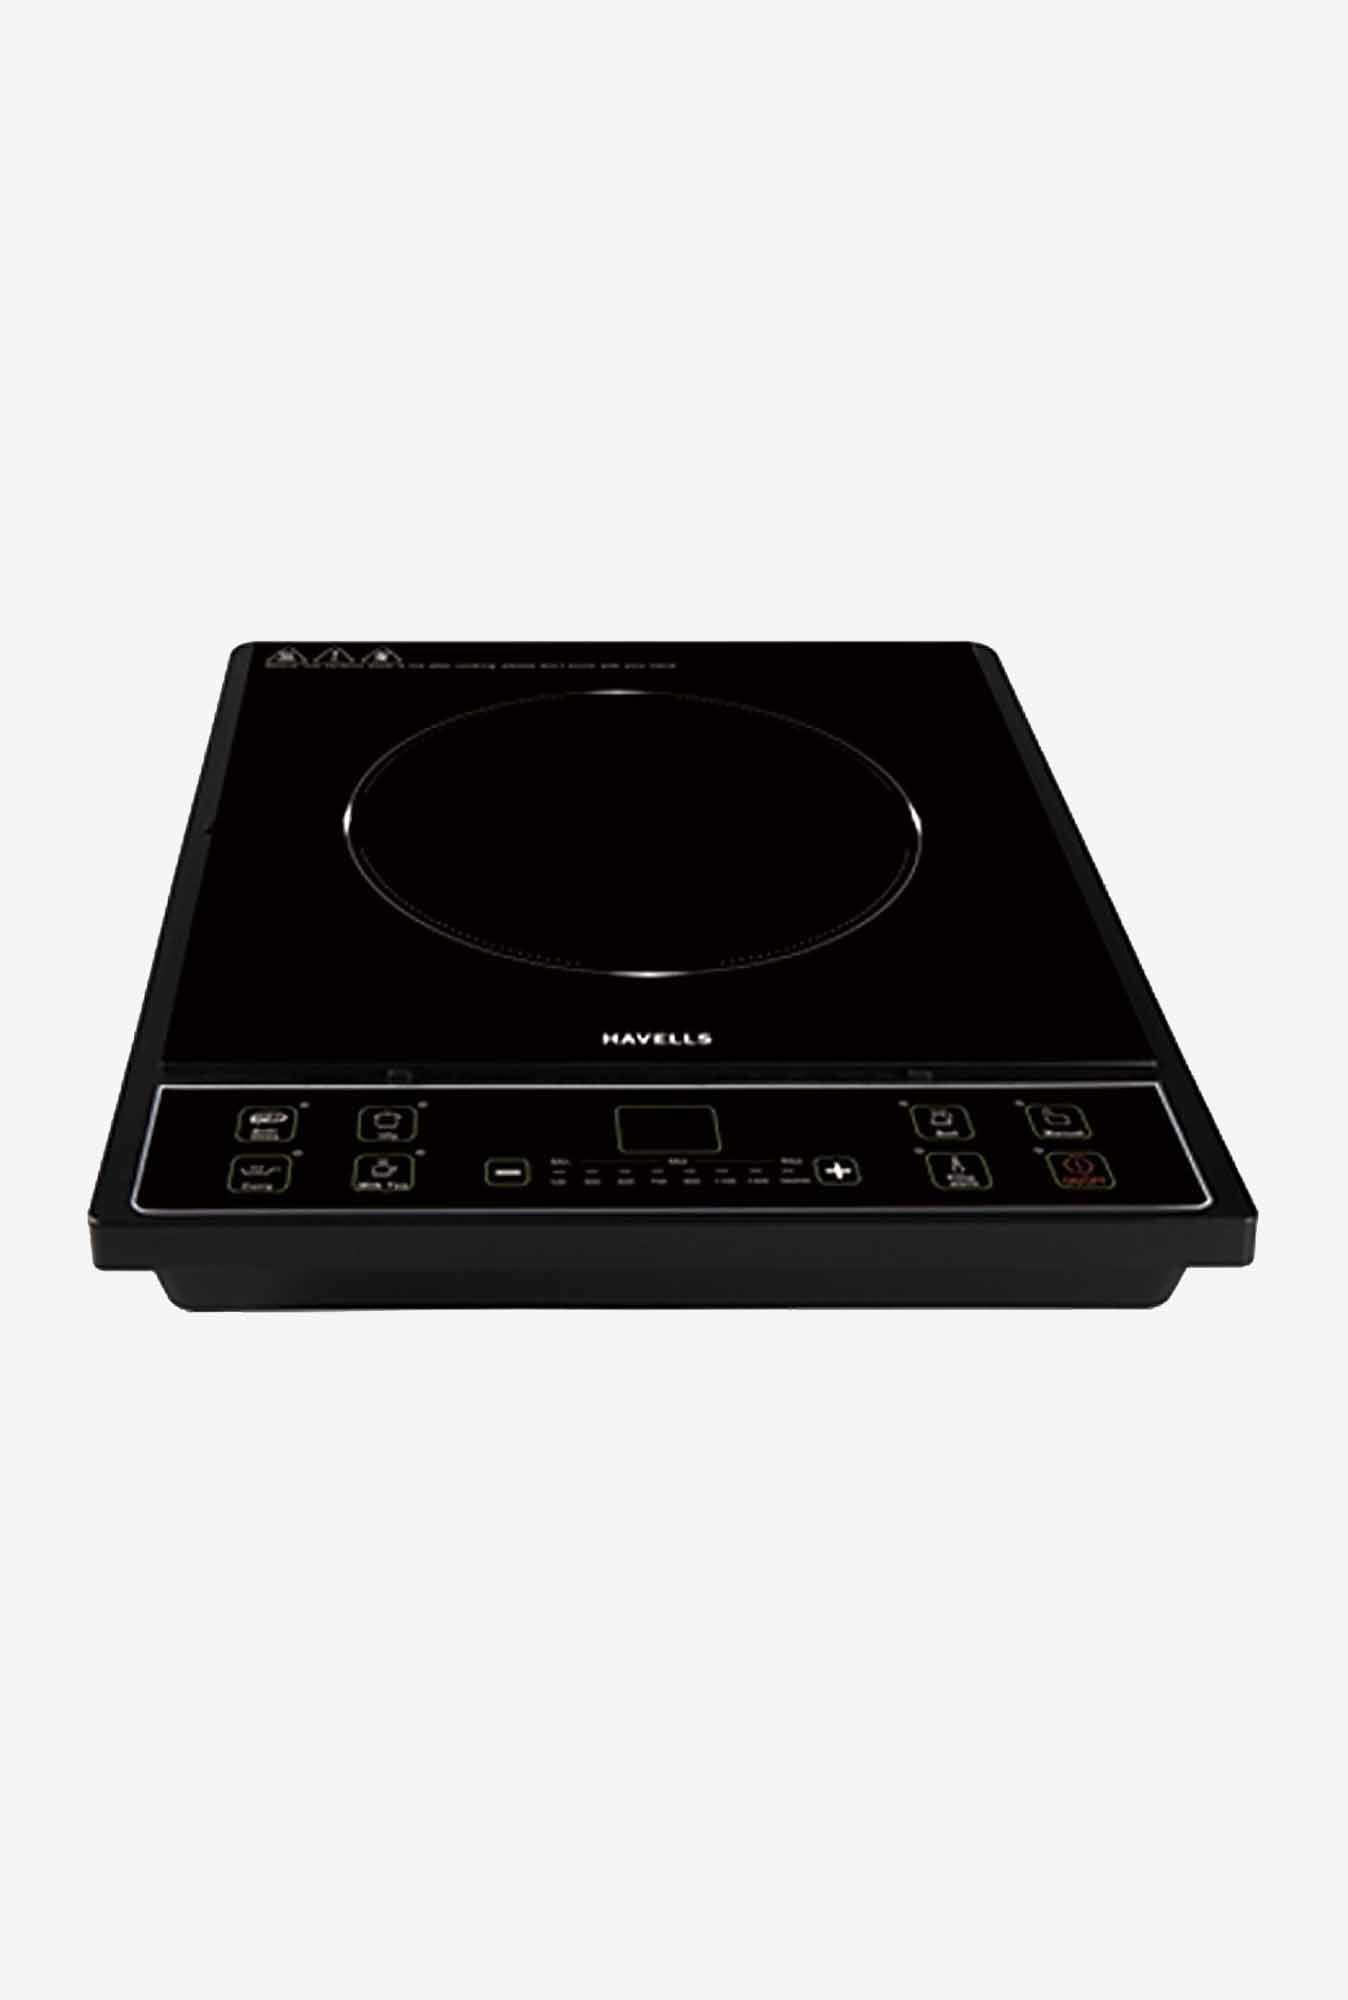 Havells Insta Cook OT 1600 W Induction Cooktops (Black)